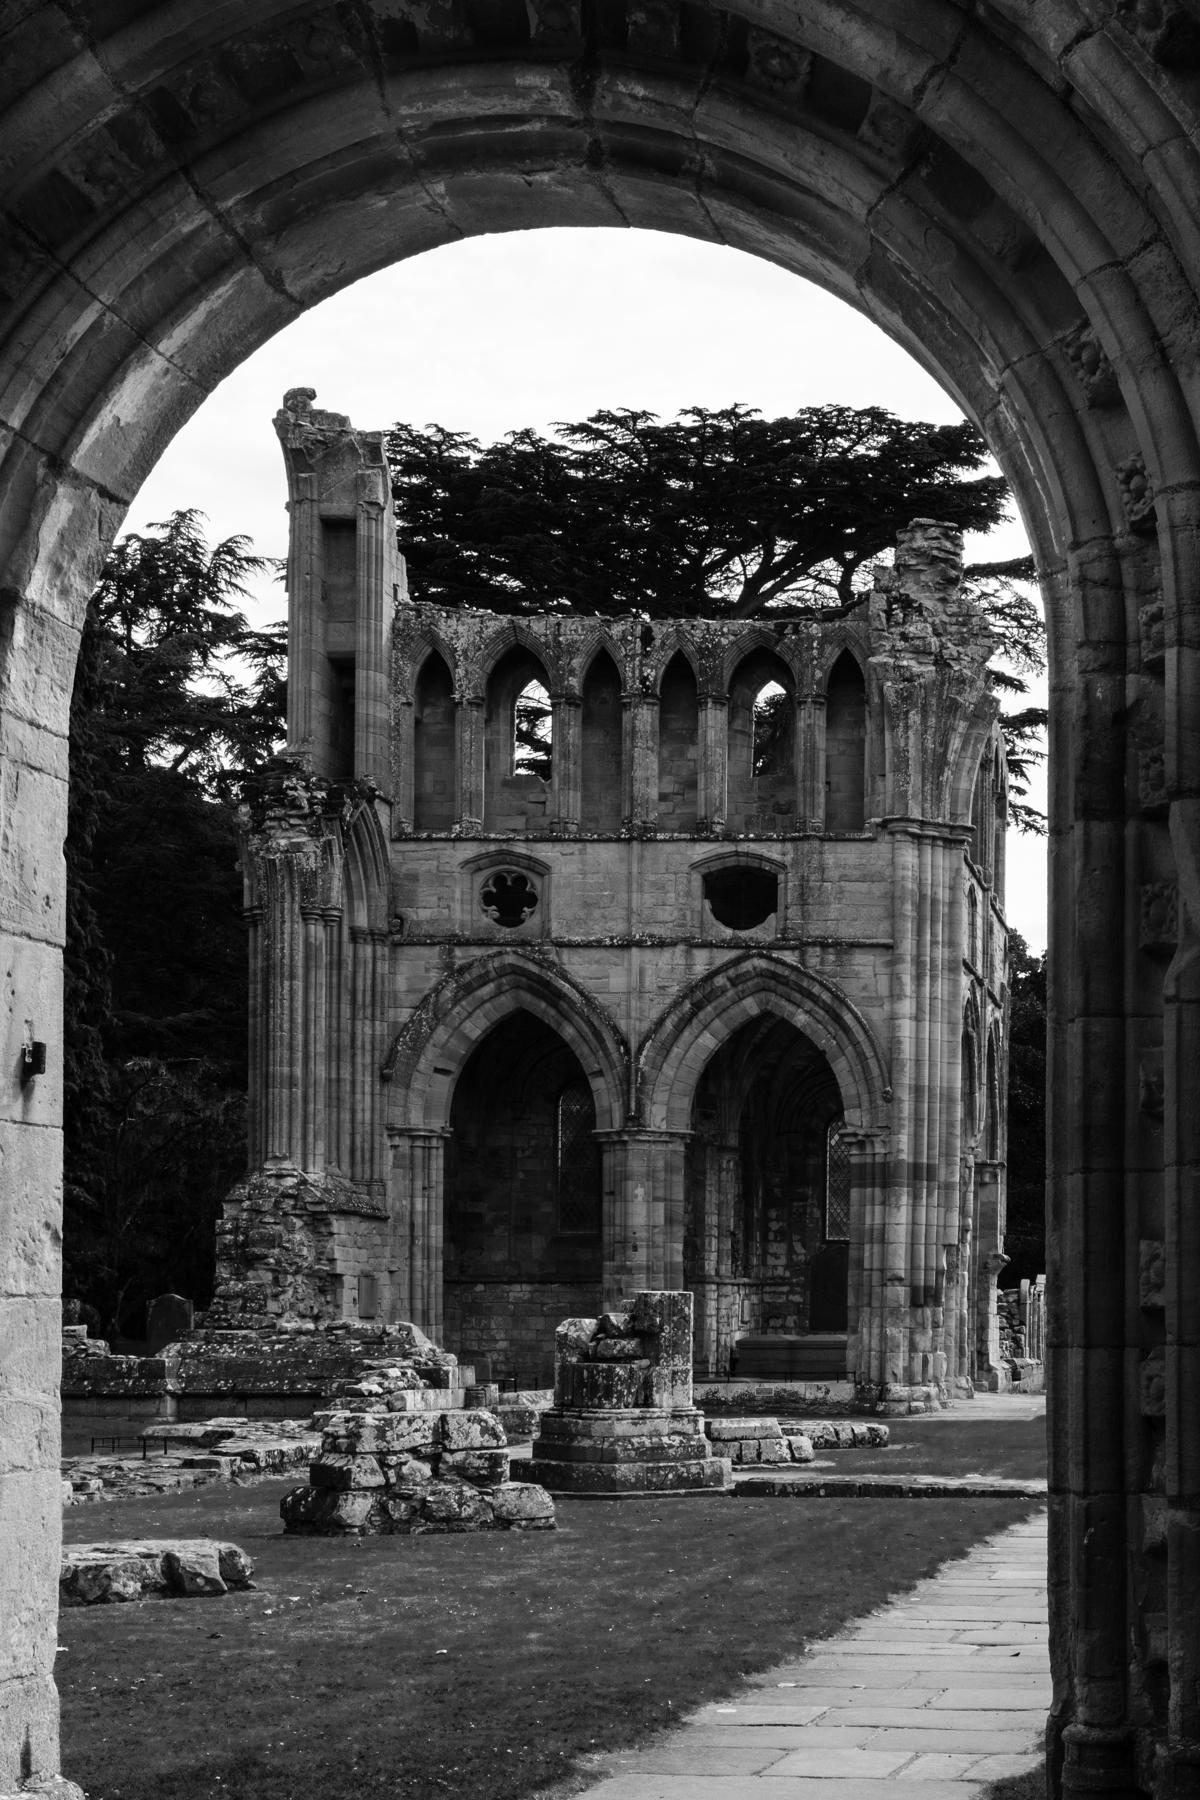 ...And at Dryburgh, Sir Walter Scott lies under the arches, accompanied in the area just in front, by Field Marshal Earl Haig of Bemersyde, until recently bête noir to WW1 historians.